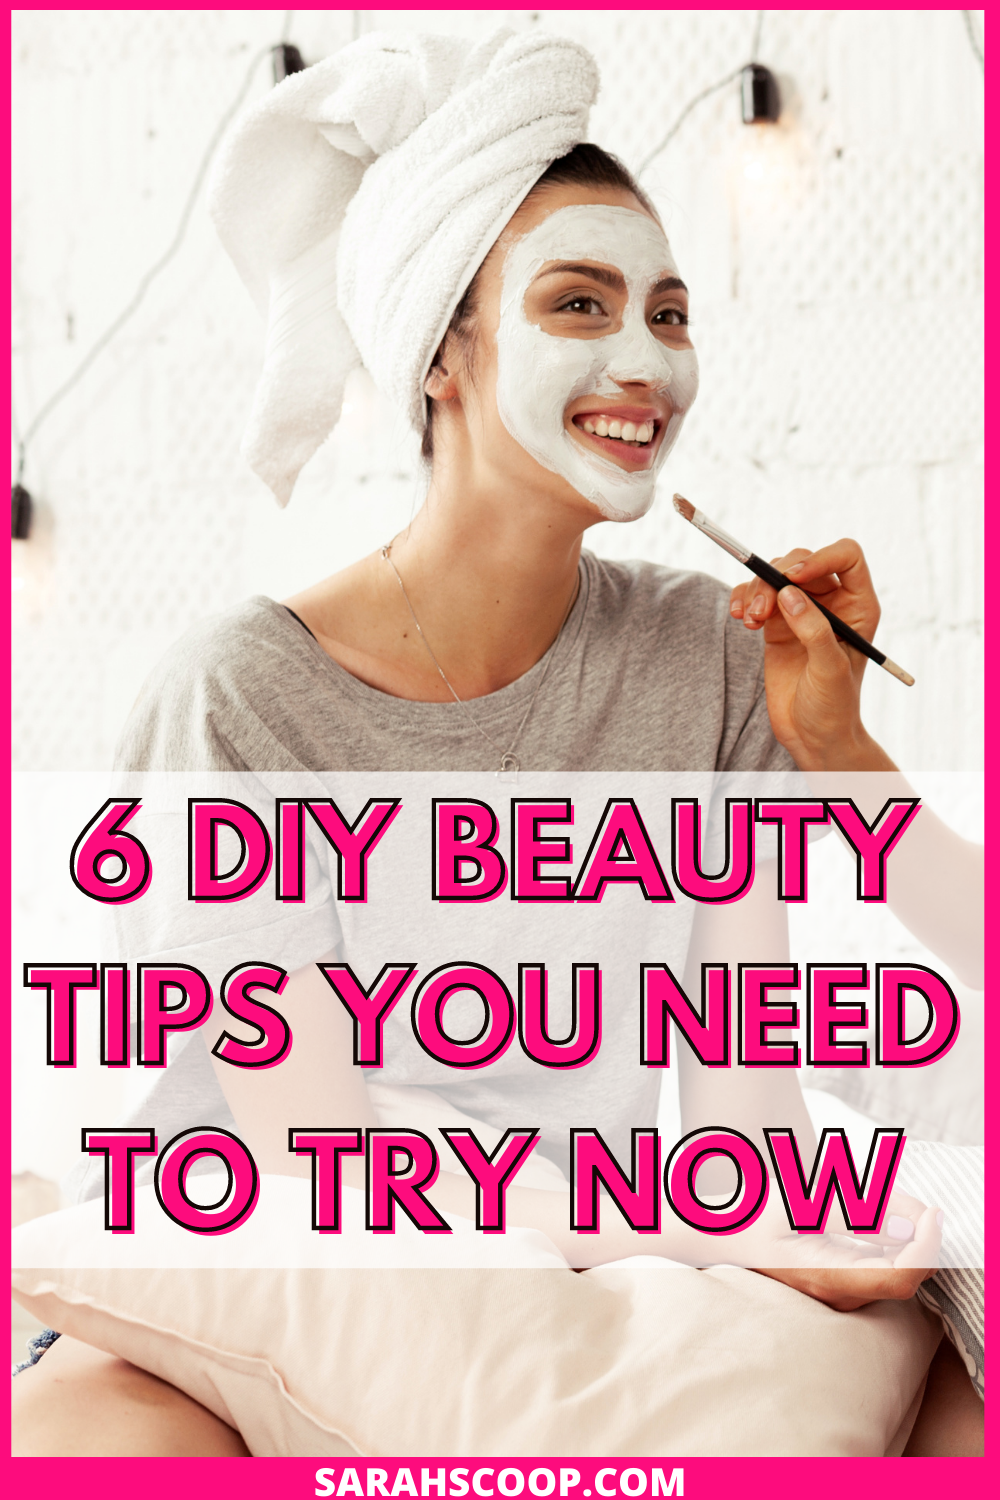 10 DIY Beauty Tips You Need To Try Now  Sarah Scoop